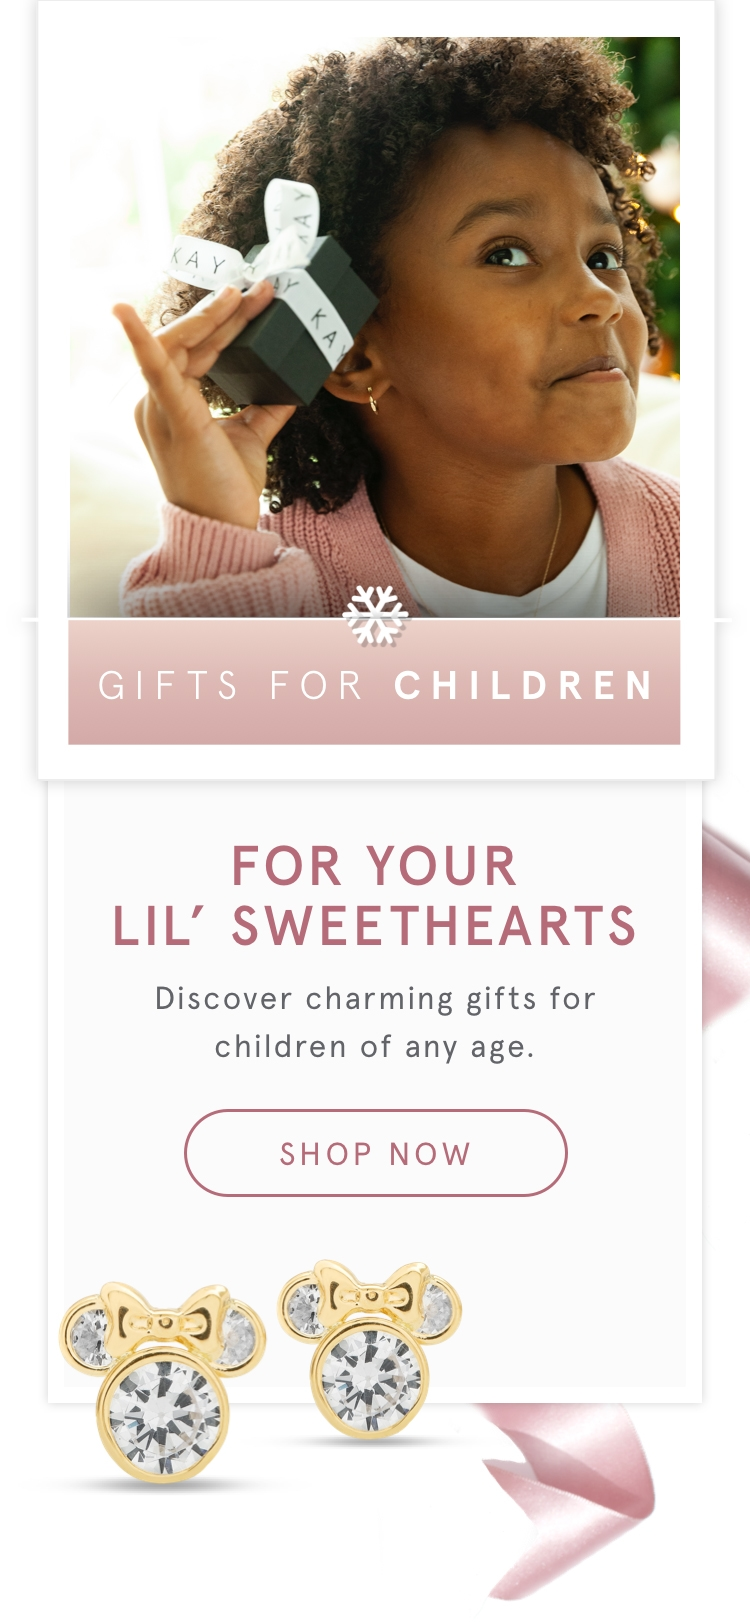 FOR YOUR LIL' SWEETHEARTS